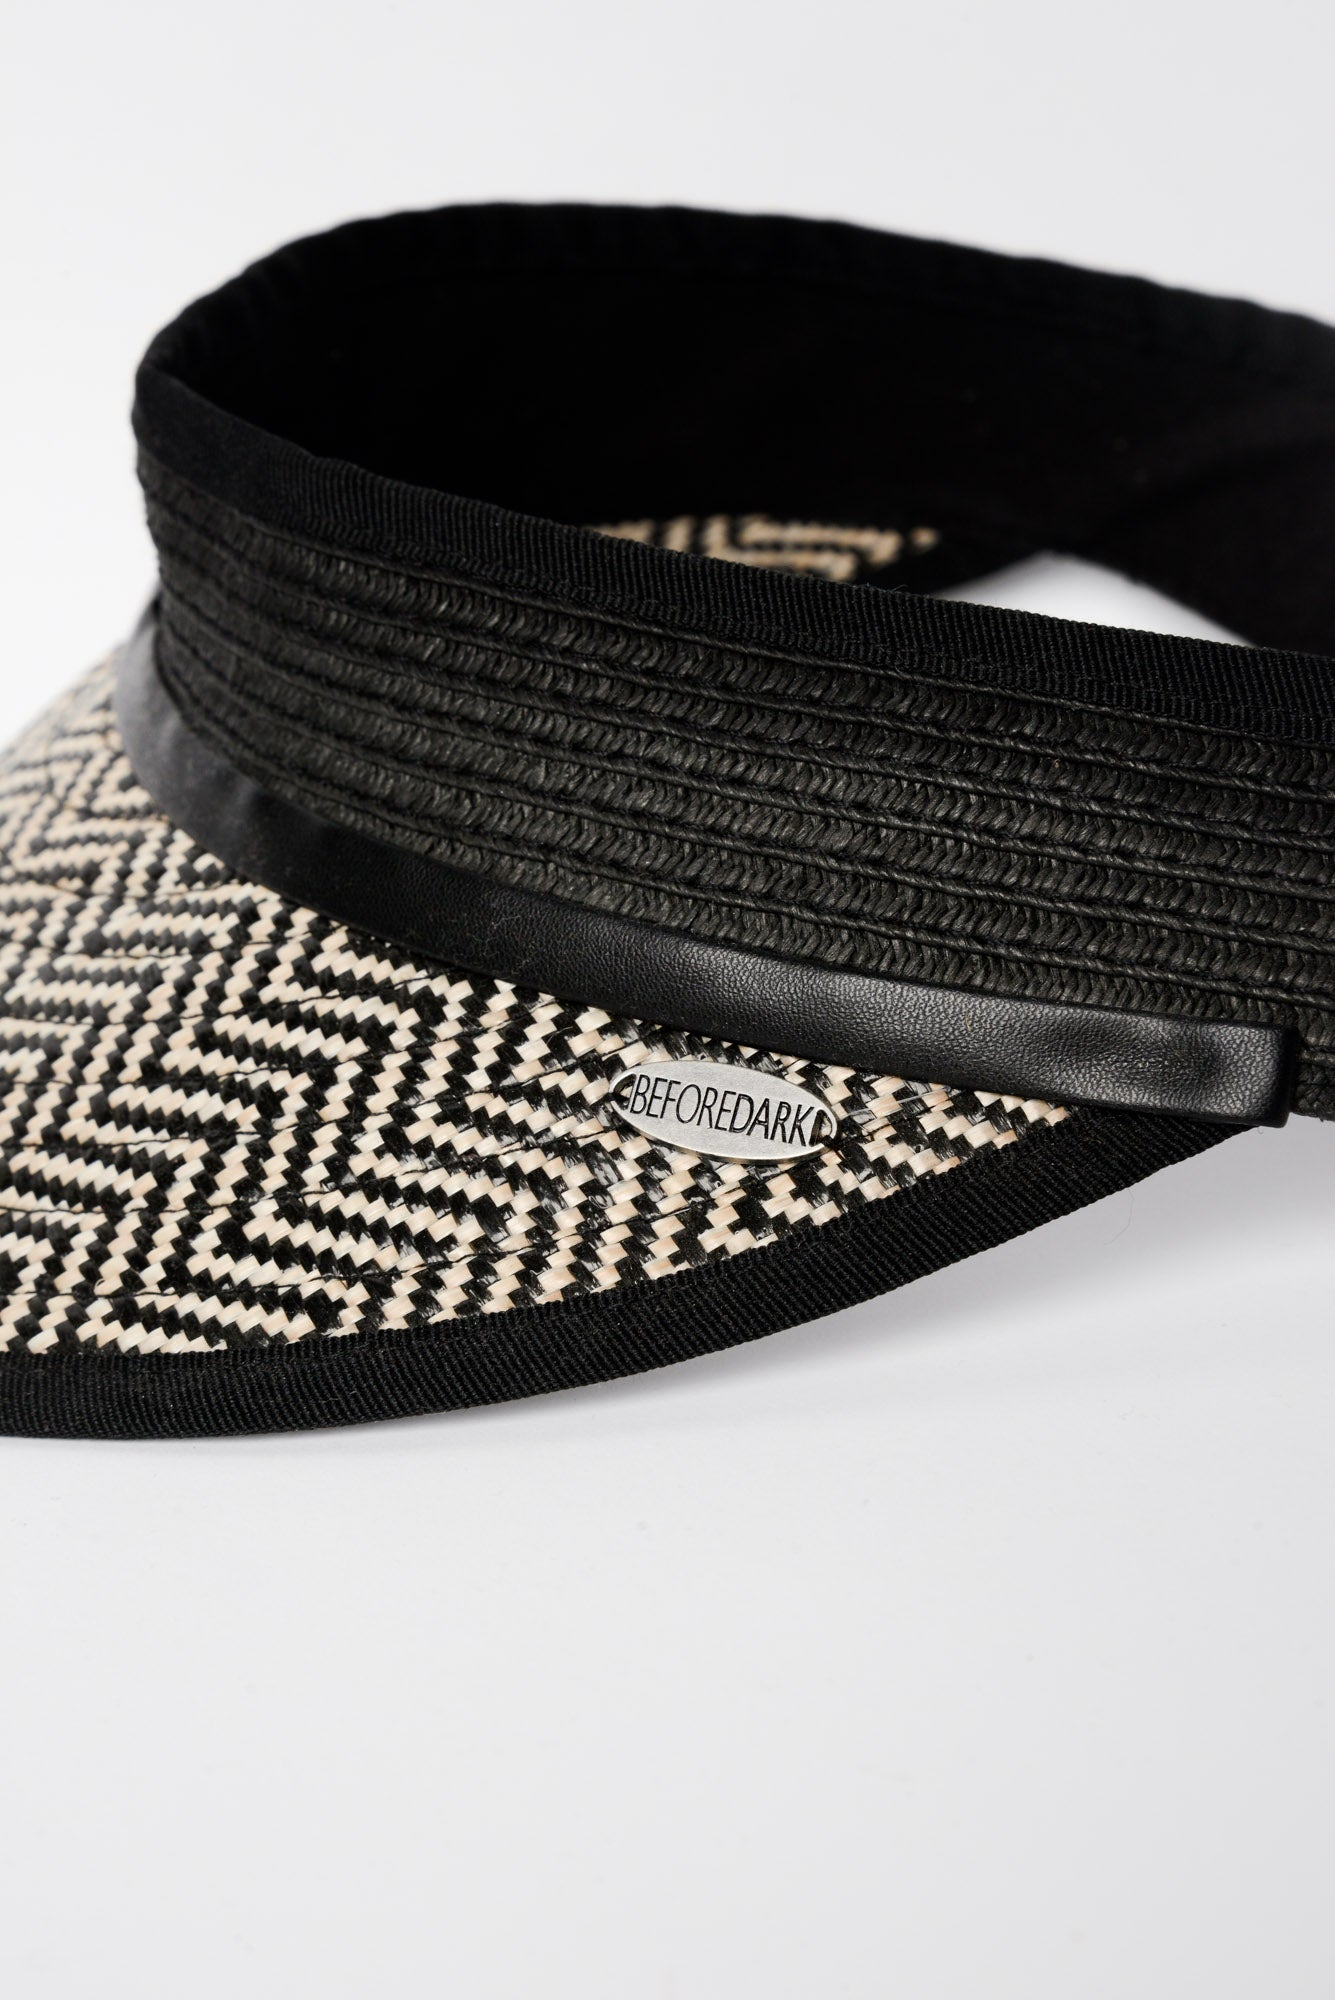 Black Herringbone Visor - vendor-unknown - Blue Bungalow Online